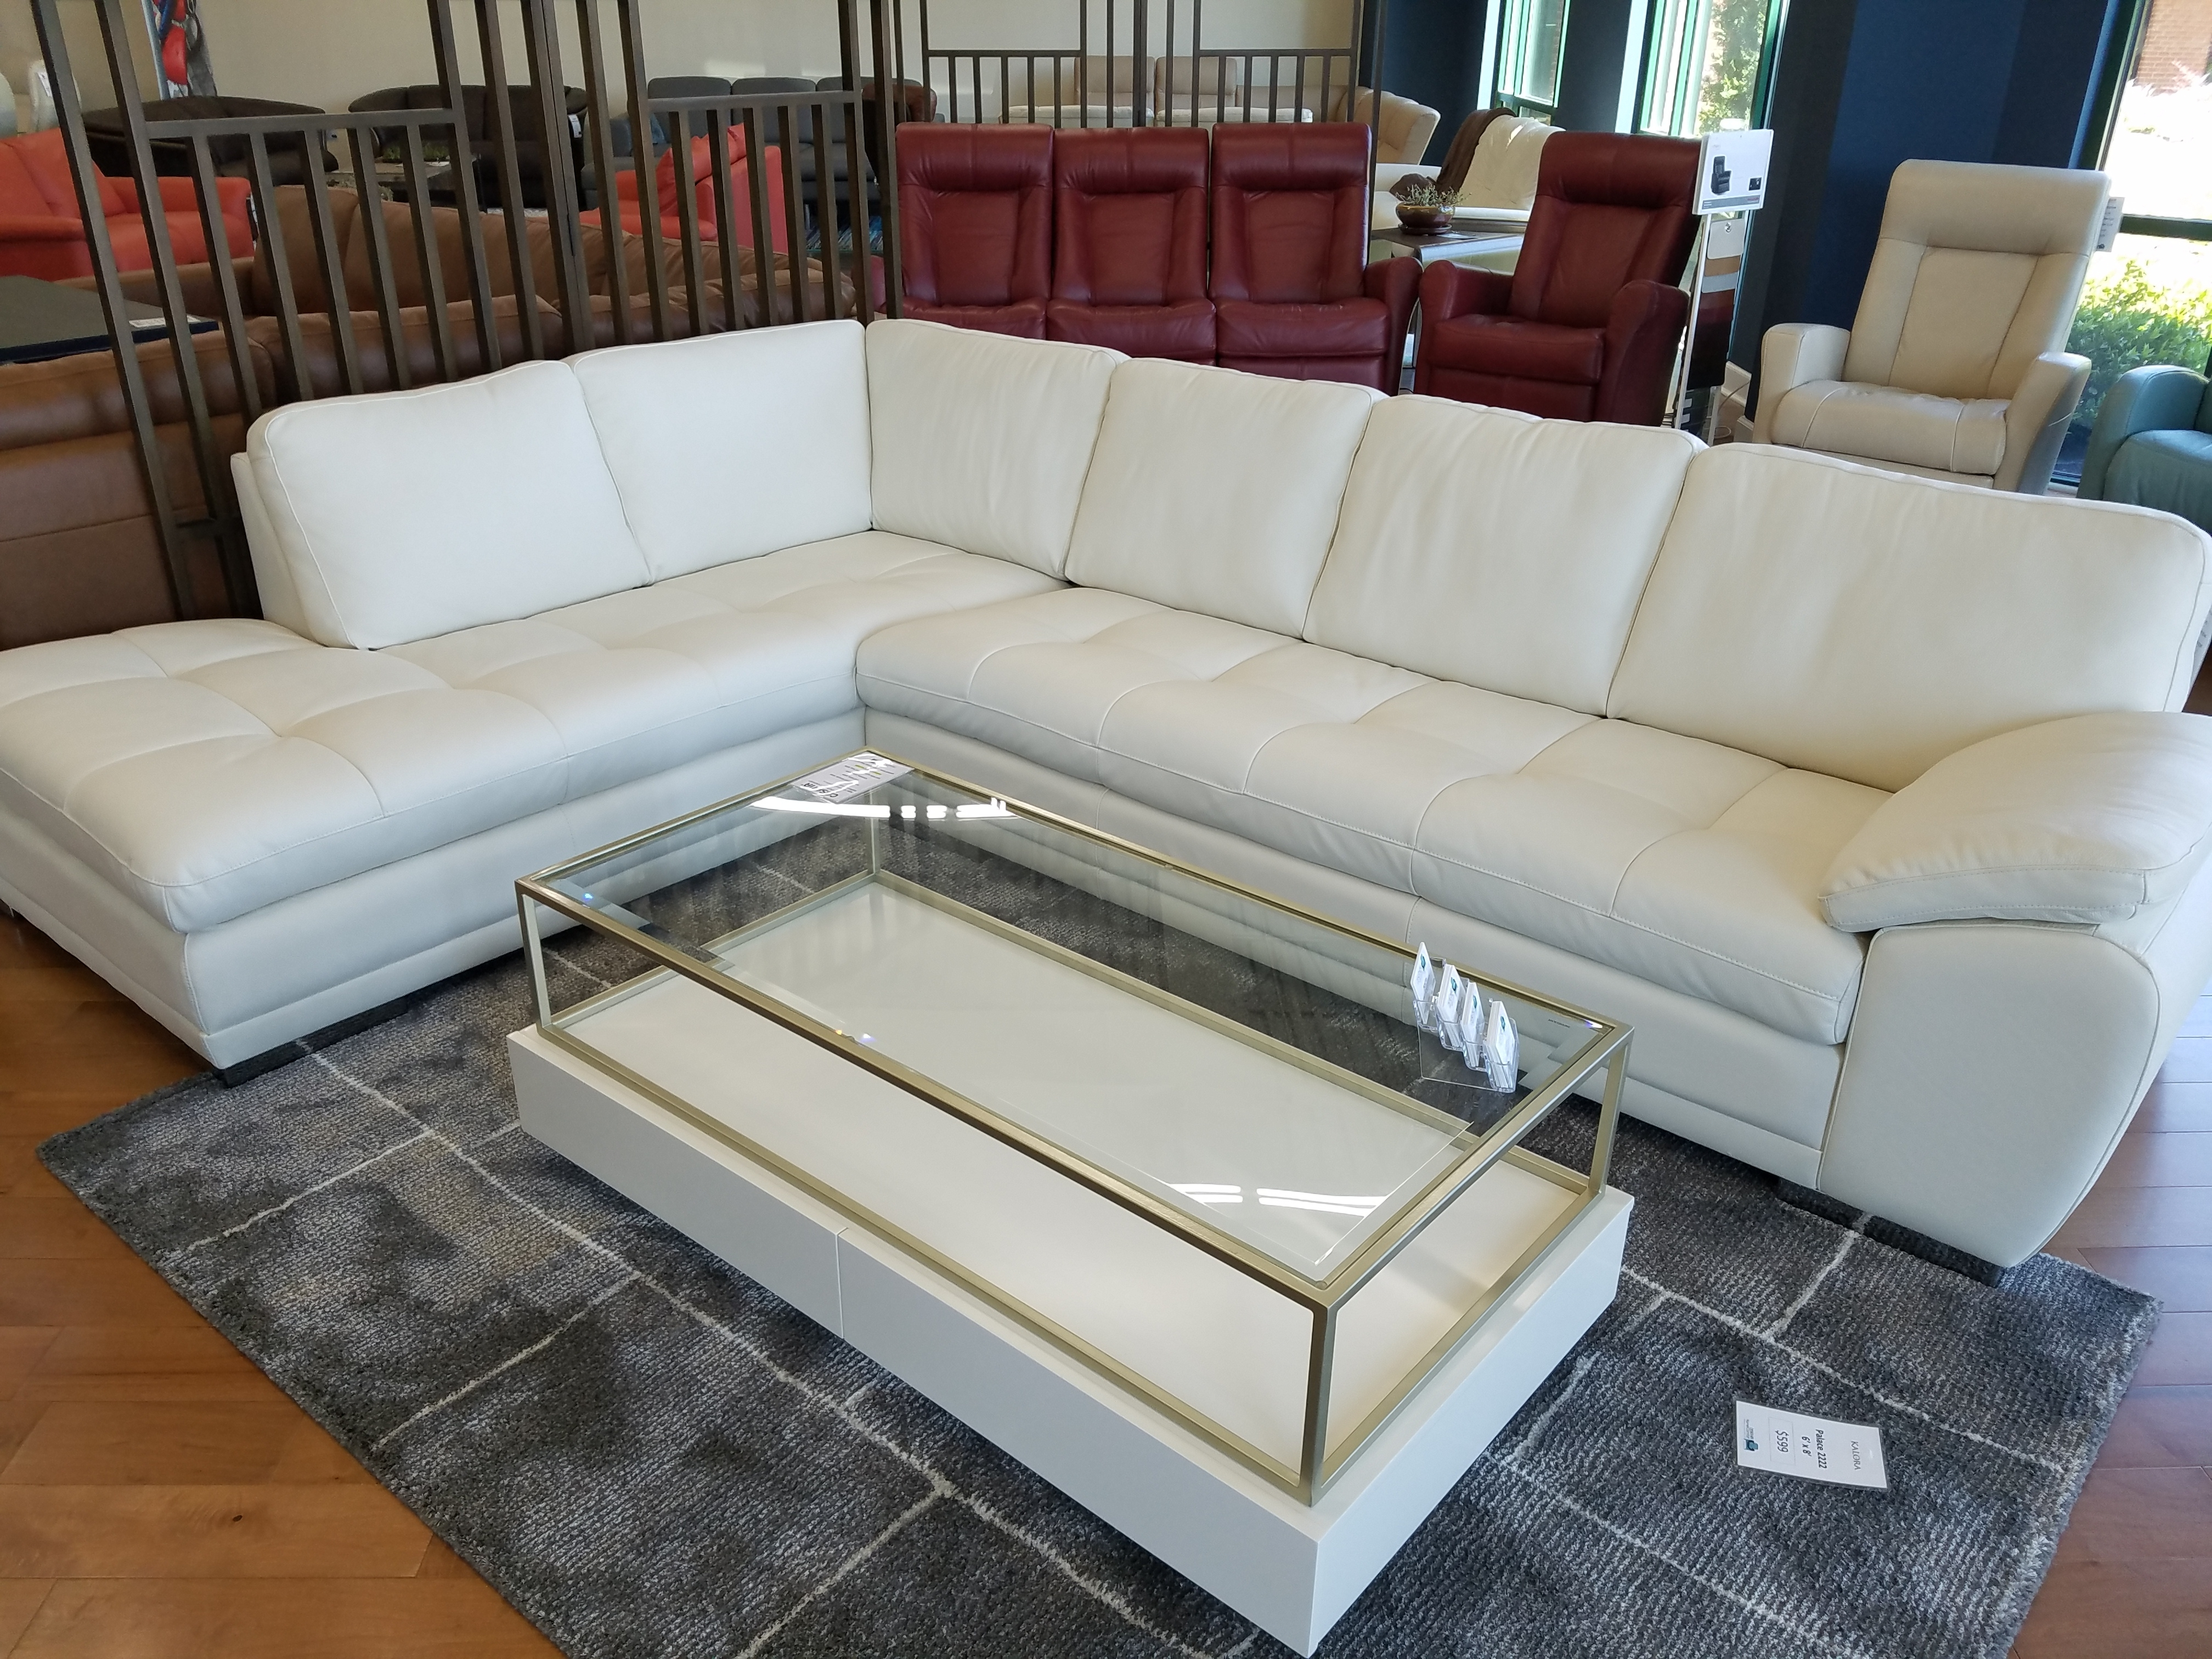 Palliser Miami Sectional Lhf Chaise Bumper And Rhf Sofa Leather Regarding Miami Sectional Sofas (View 10 of 10)